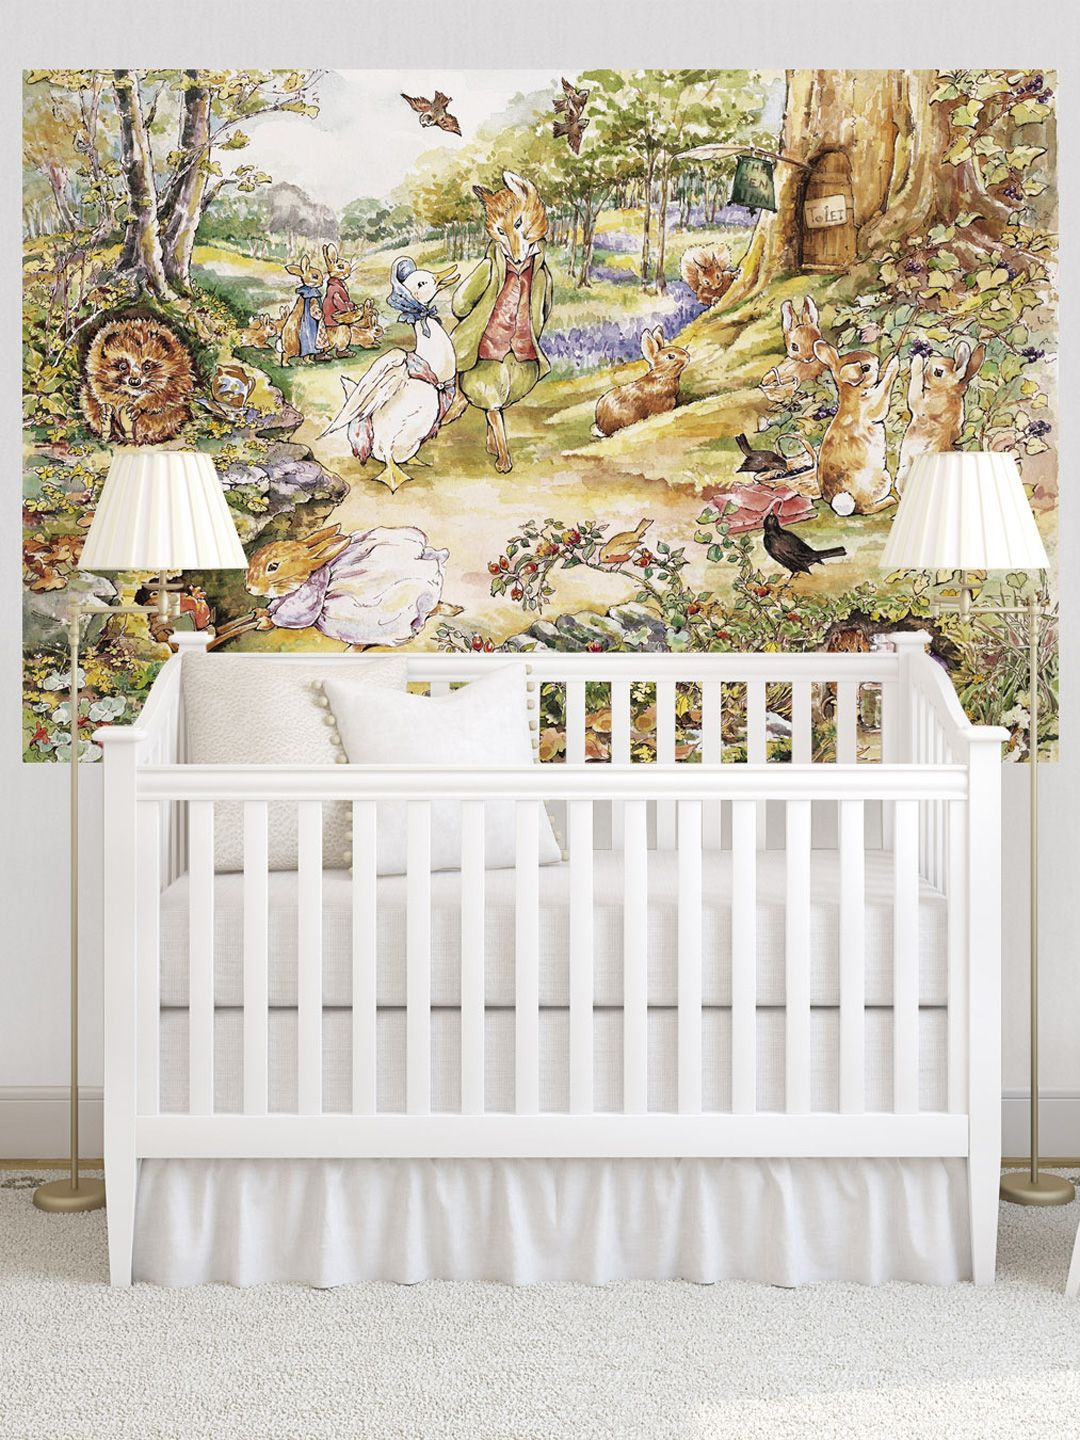 A surprise for my wife and the nursery country woodlands wall mural by murals your